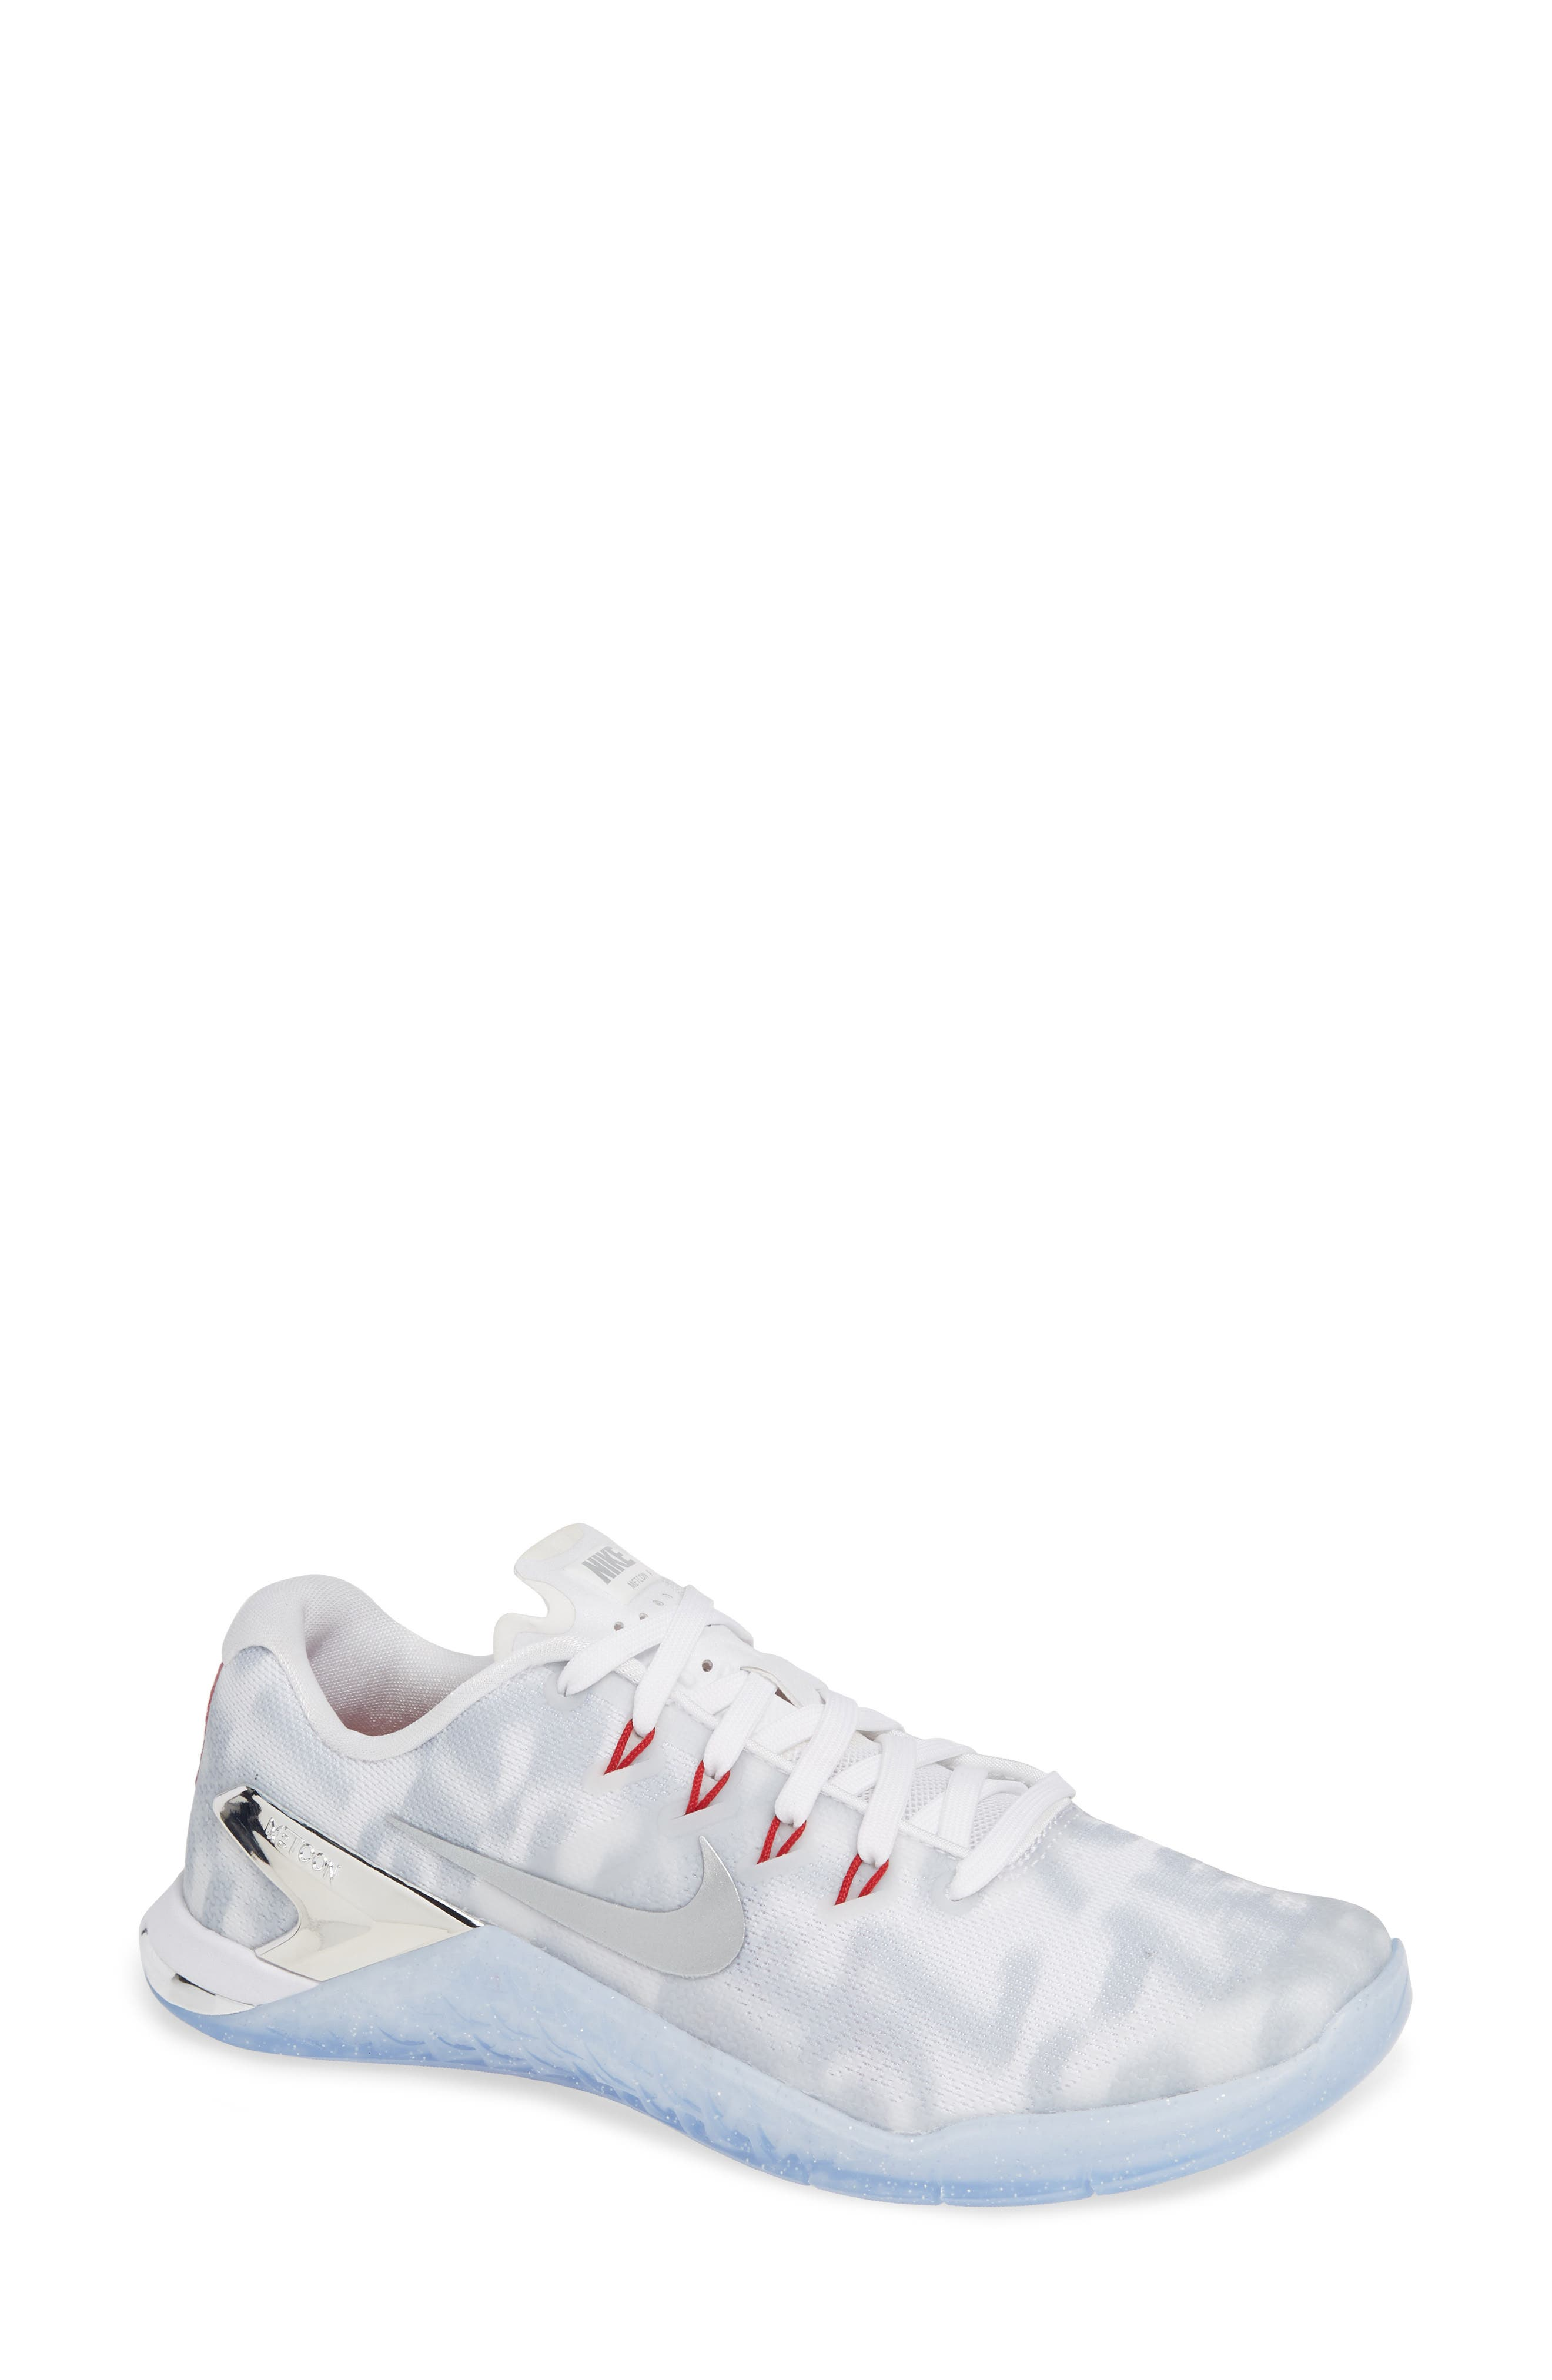 Metcon 4 Training Shoe,                         Main,                         color, WHITE METALLIC SILVER/ GYM RED